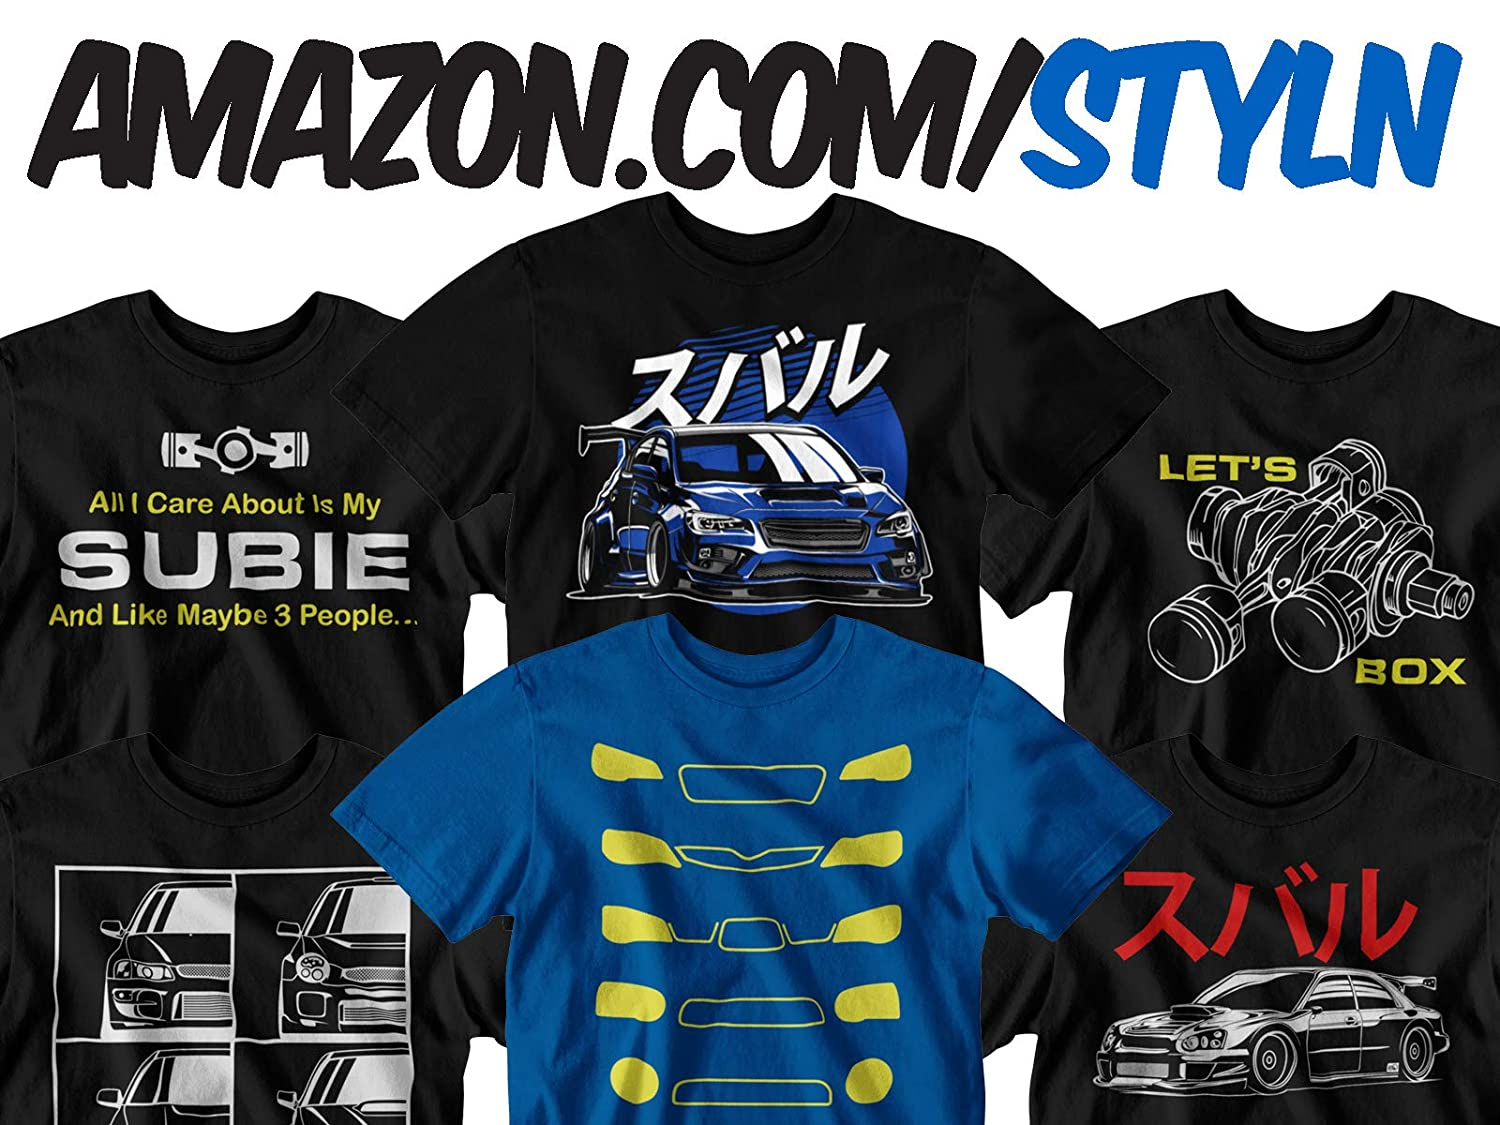 All I Care About is My Subie T-Shirt